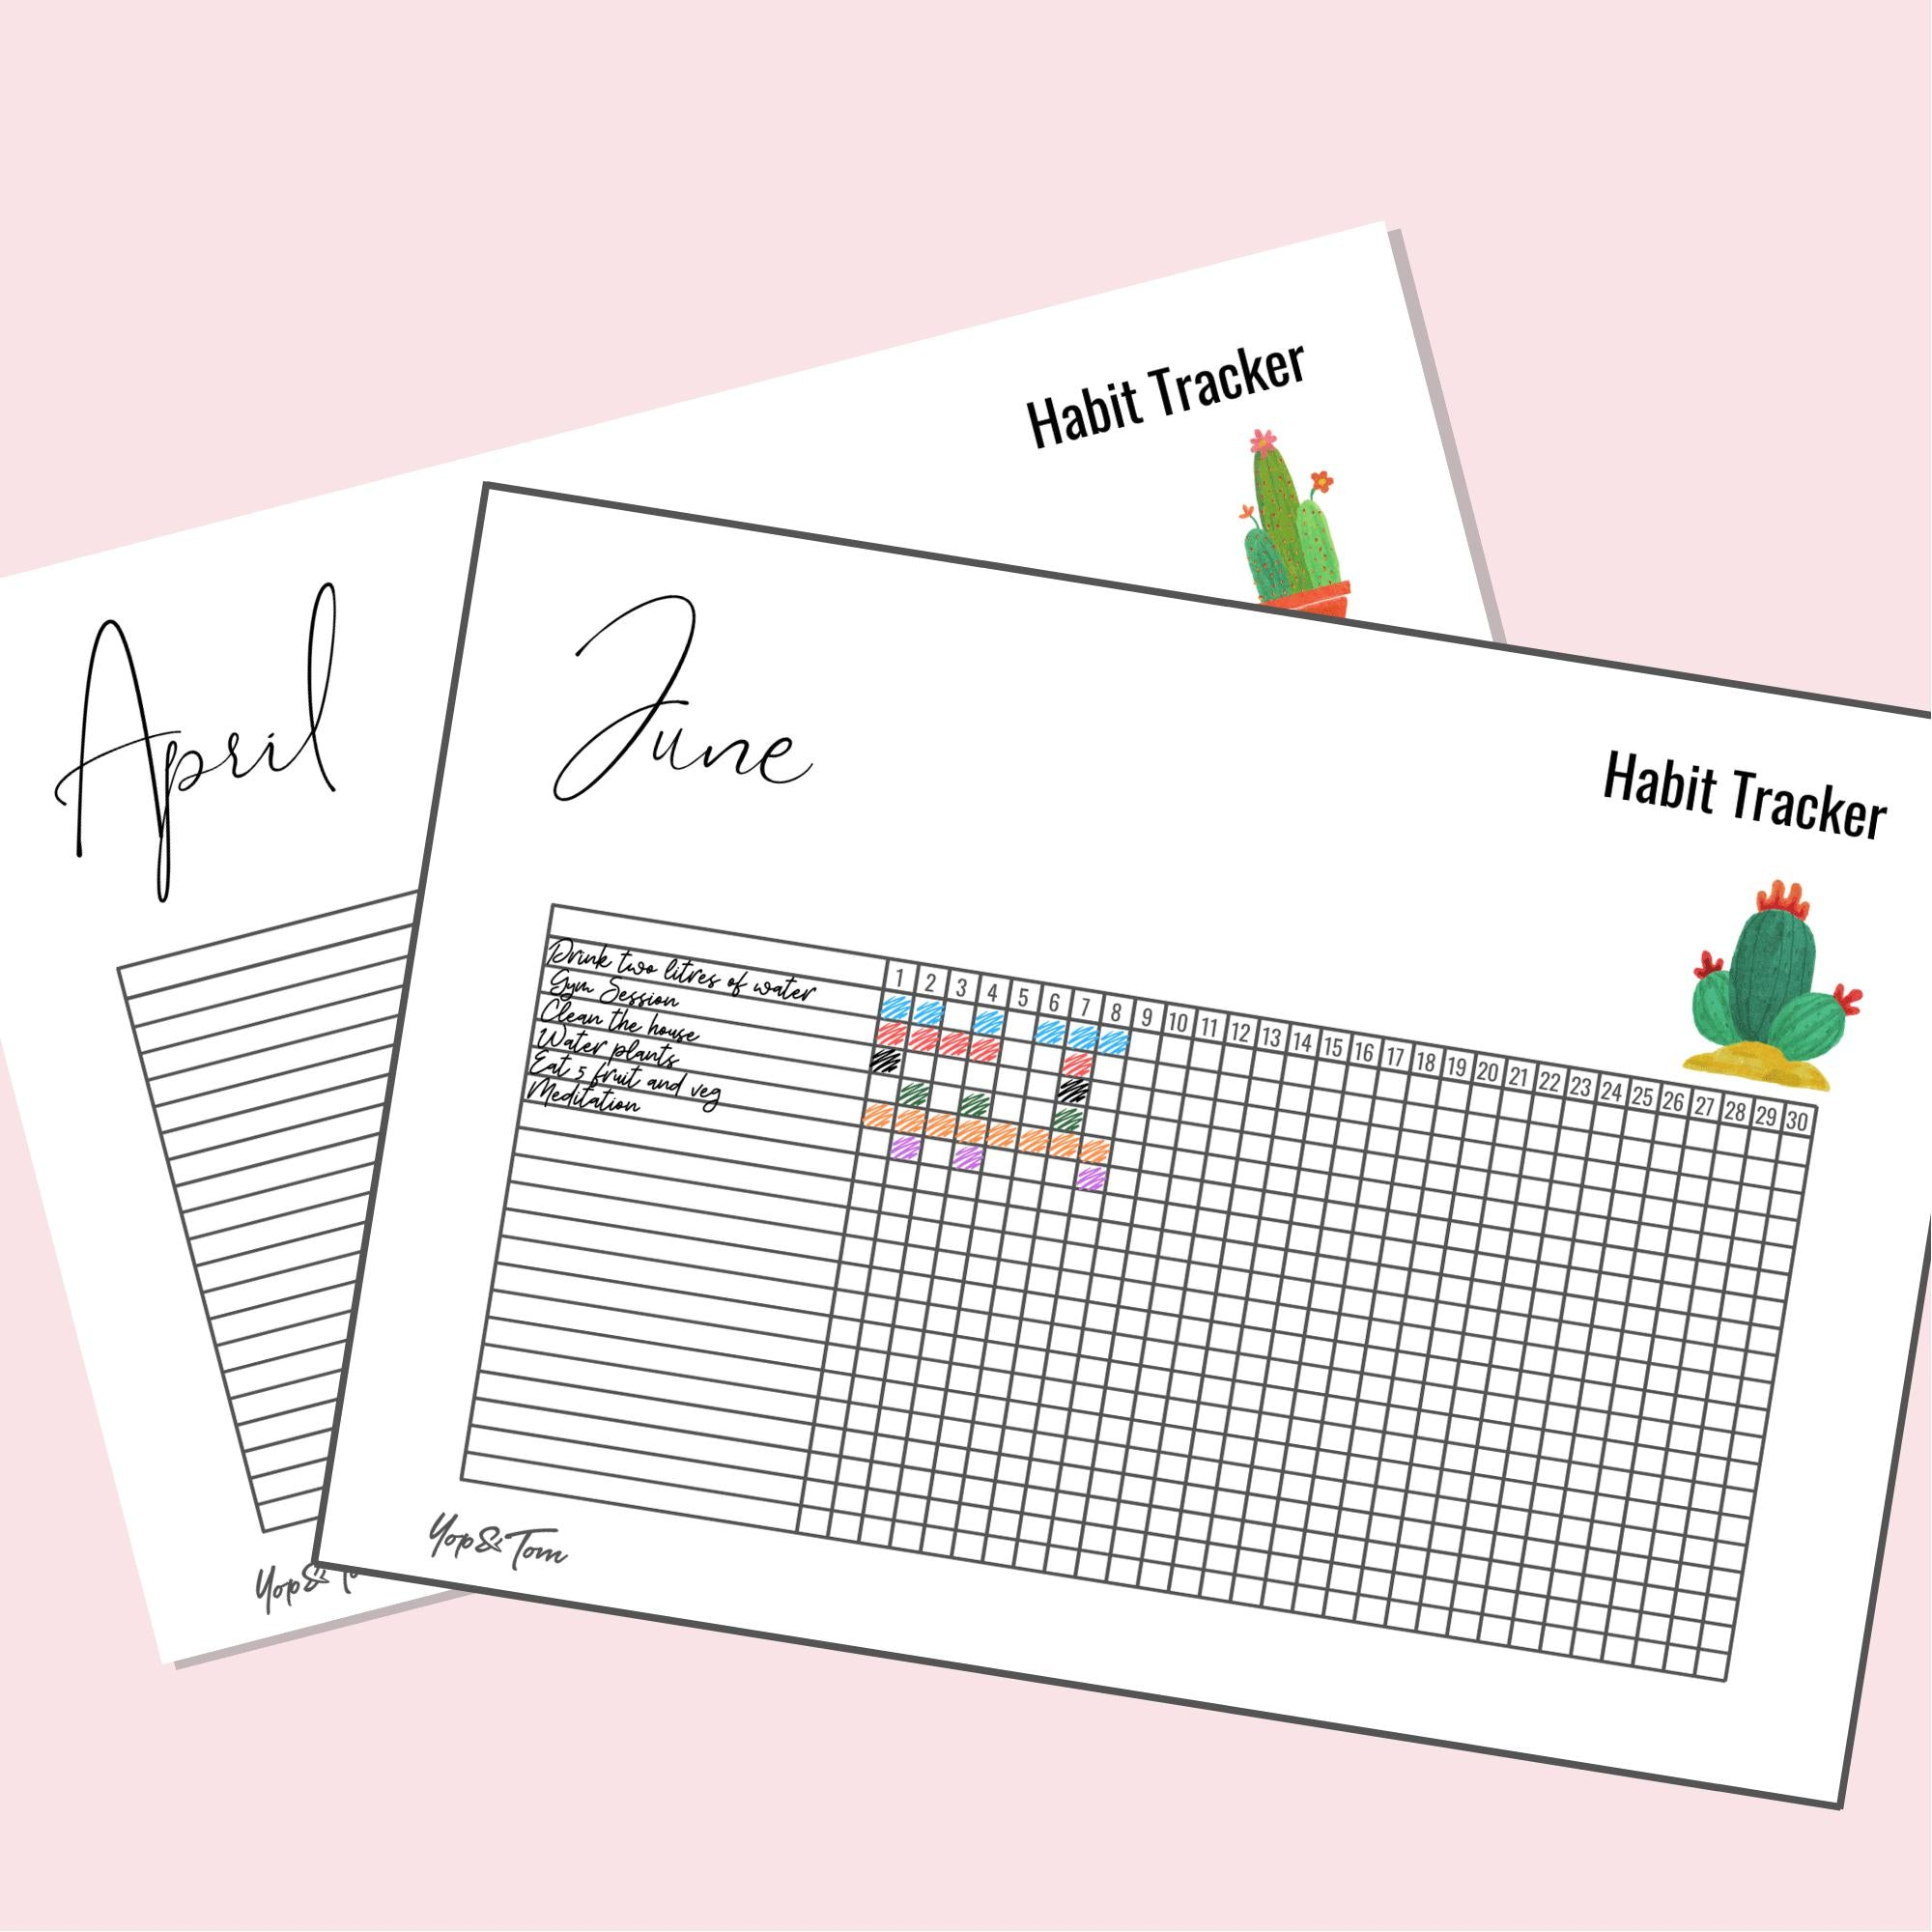 The Complete Guide to Habit Trackers (with free printables) - Yop & Tom